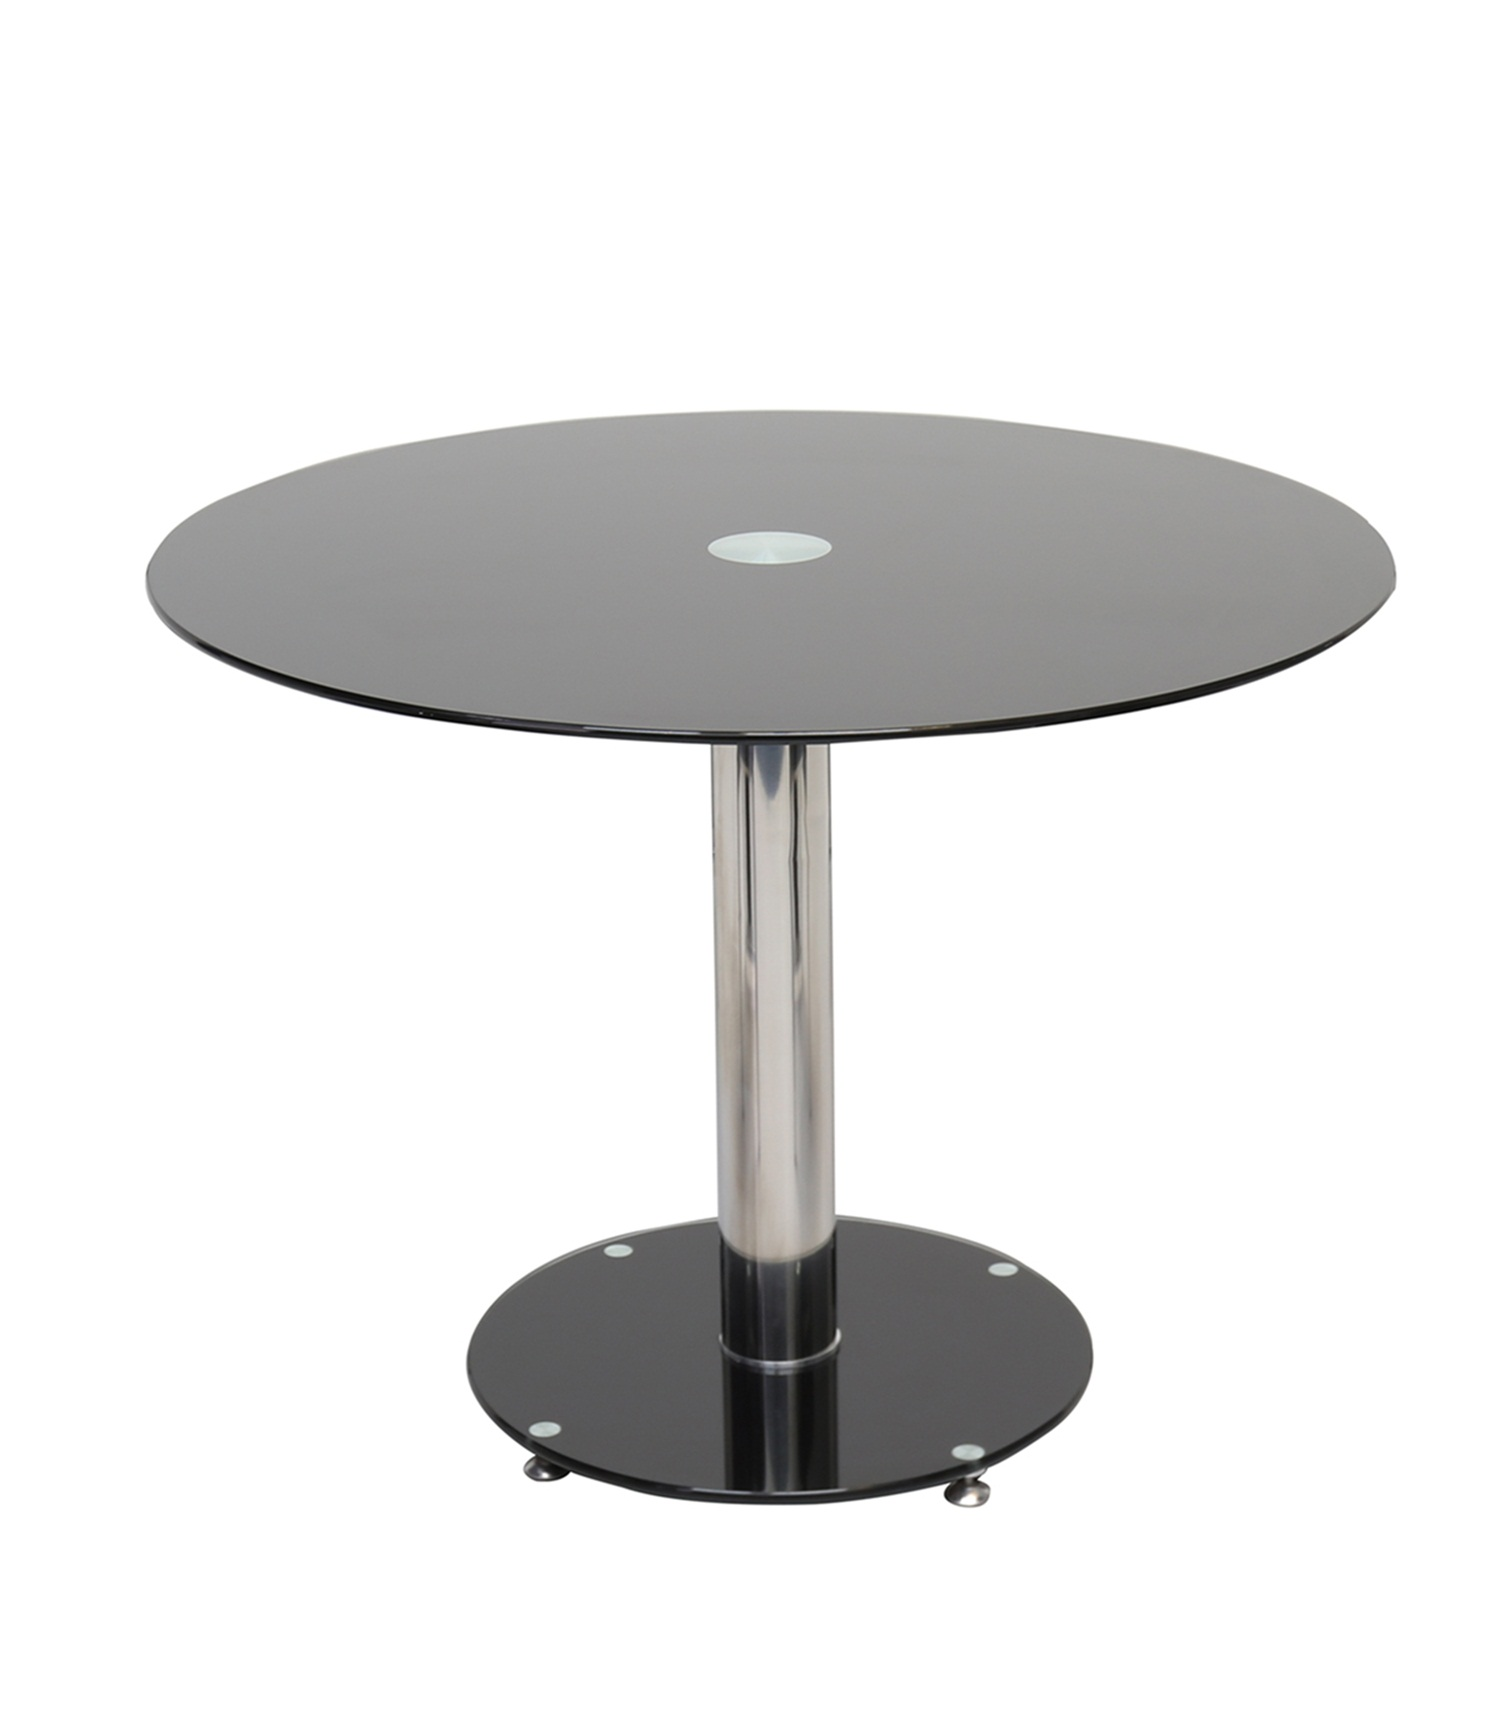 Parma (100cm) Dining Table Black